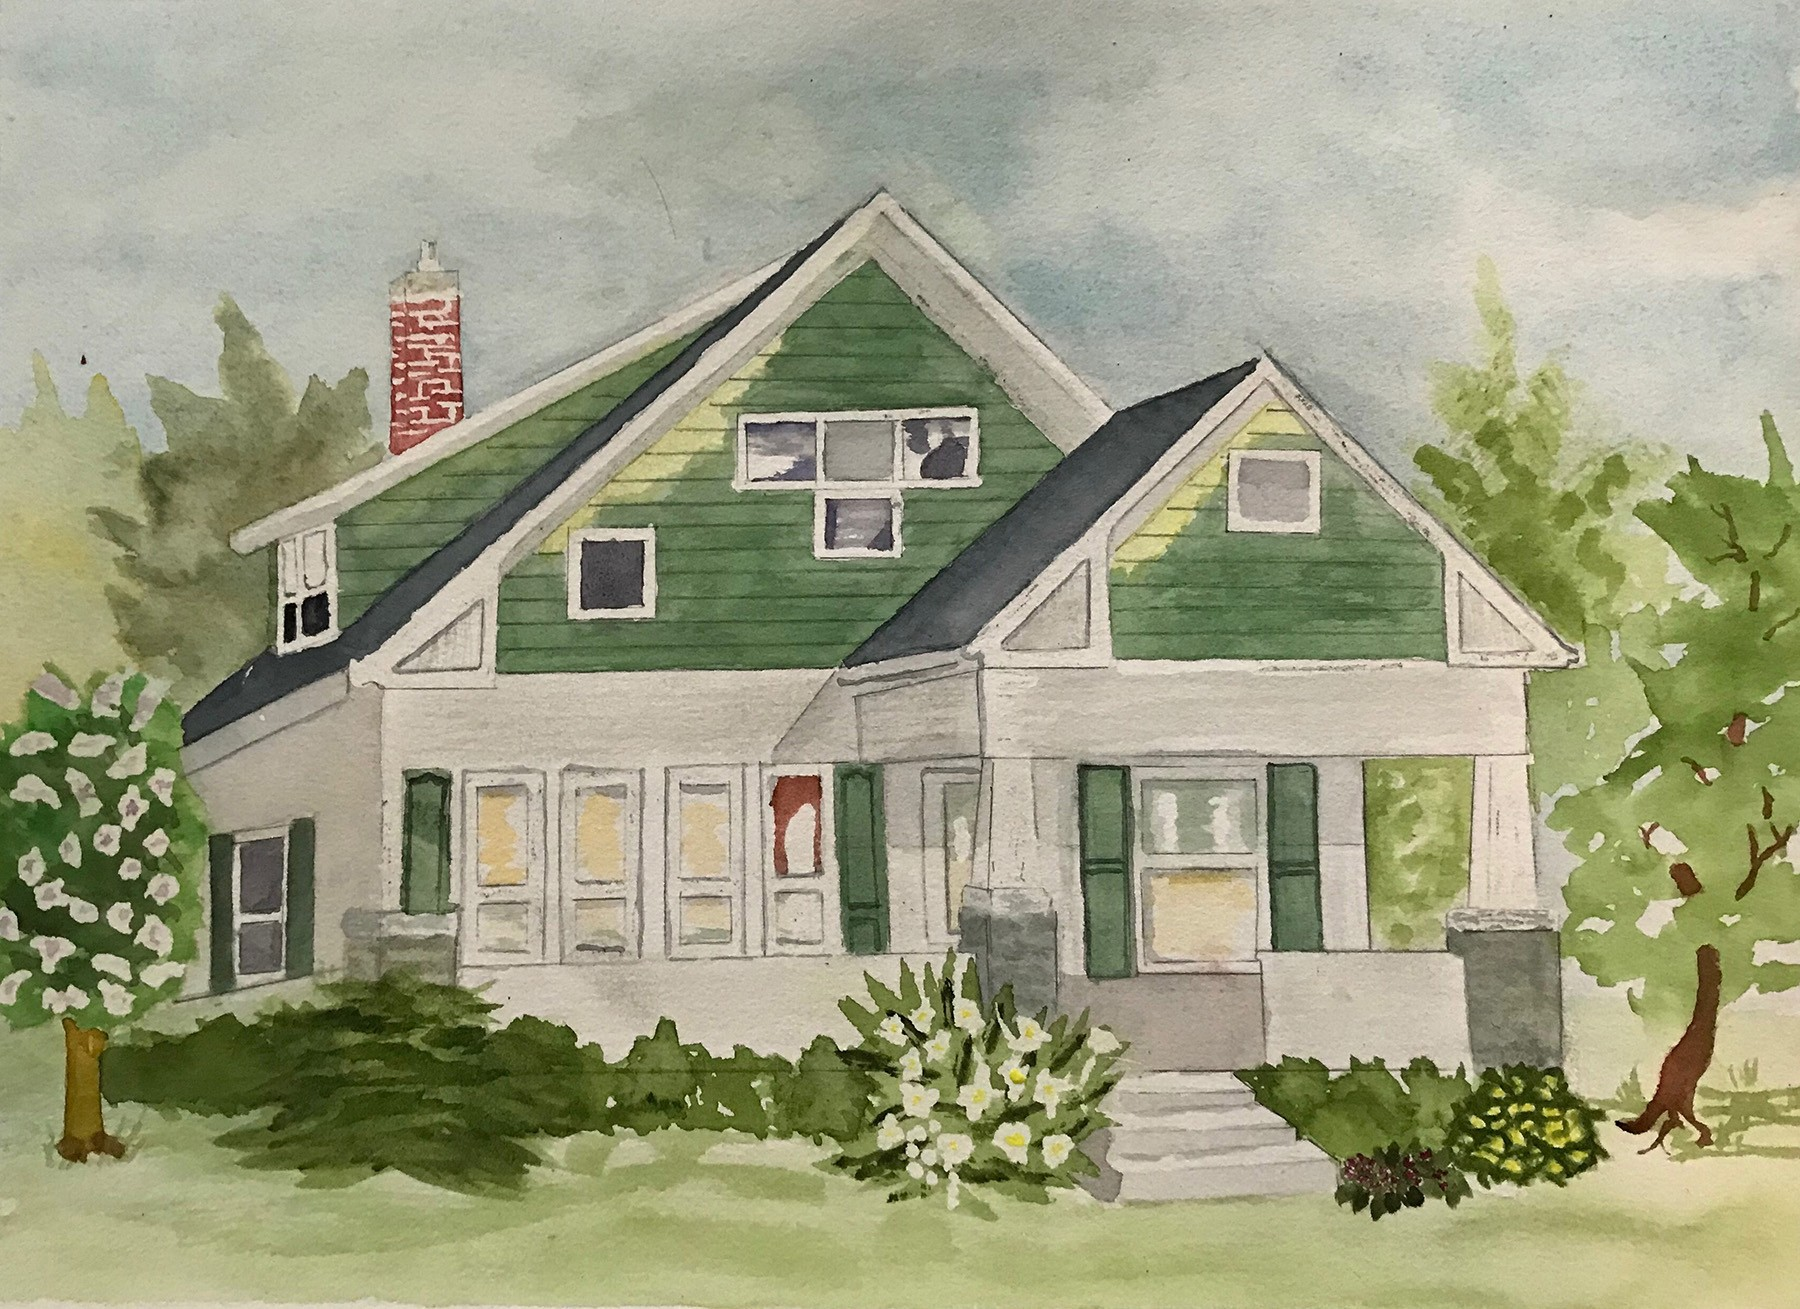 Farmhouse Rendering using traditional watercolor technique